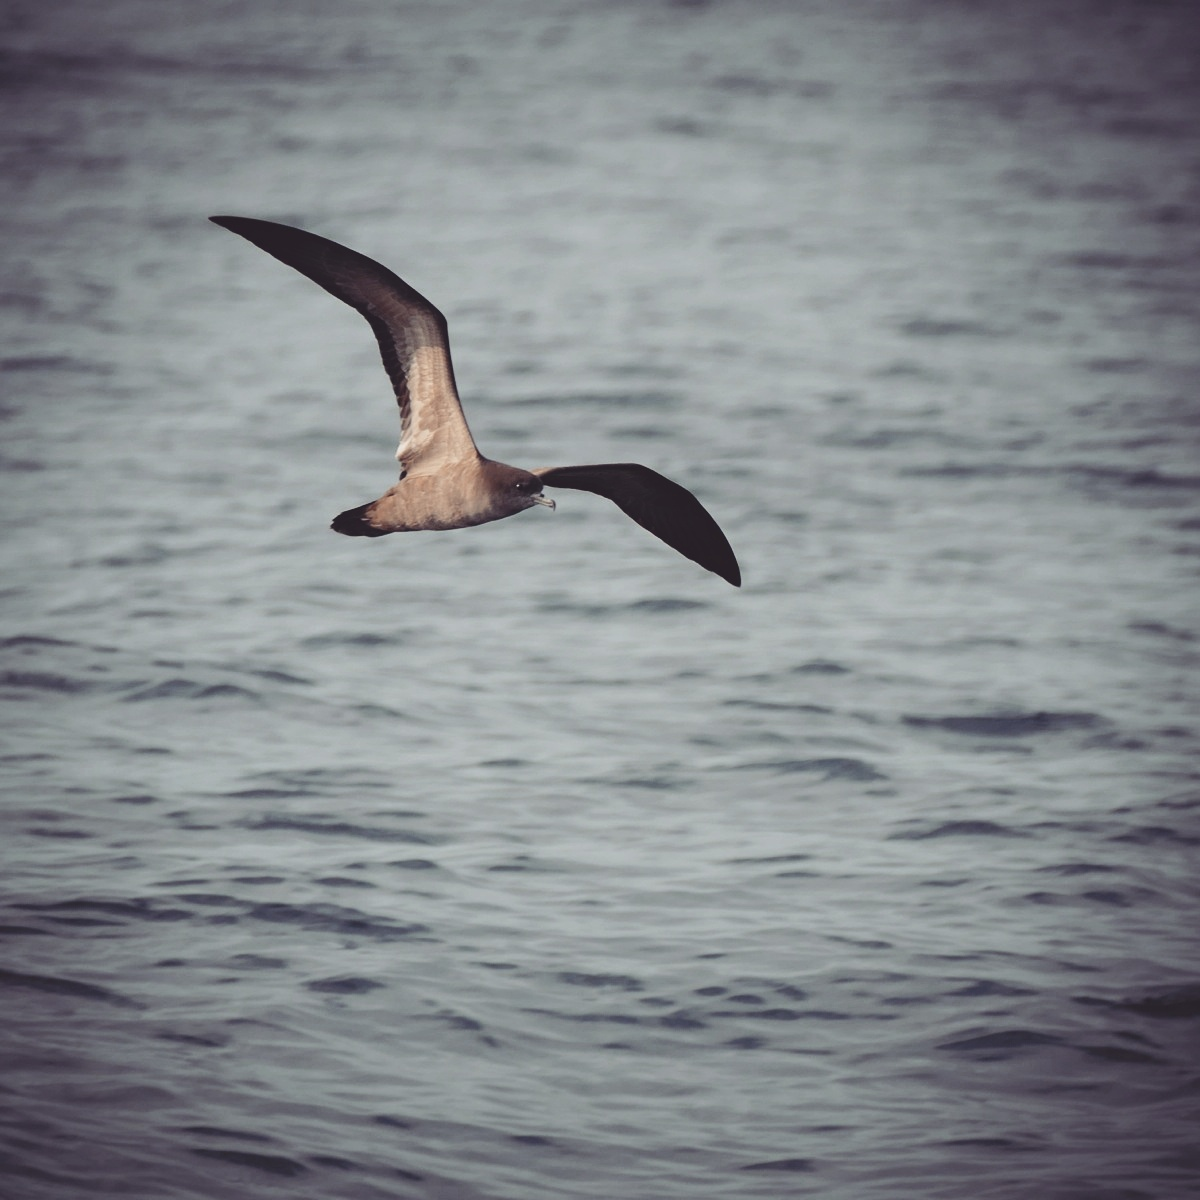 A Wedge-tailed Shearwater flies past about 10 miles off Huatulco. Noah Strycker